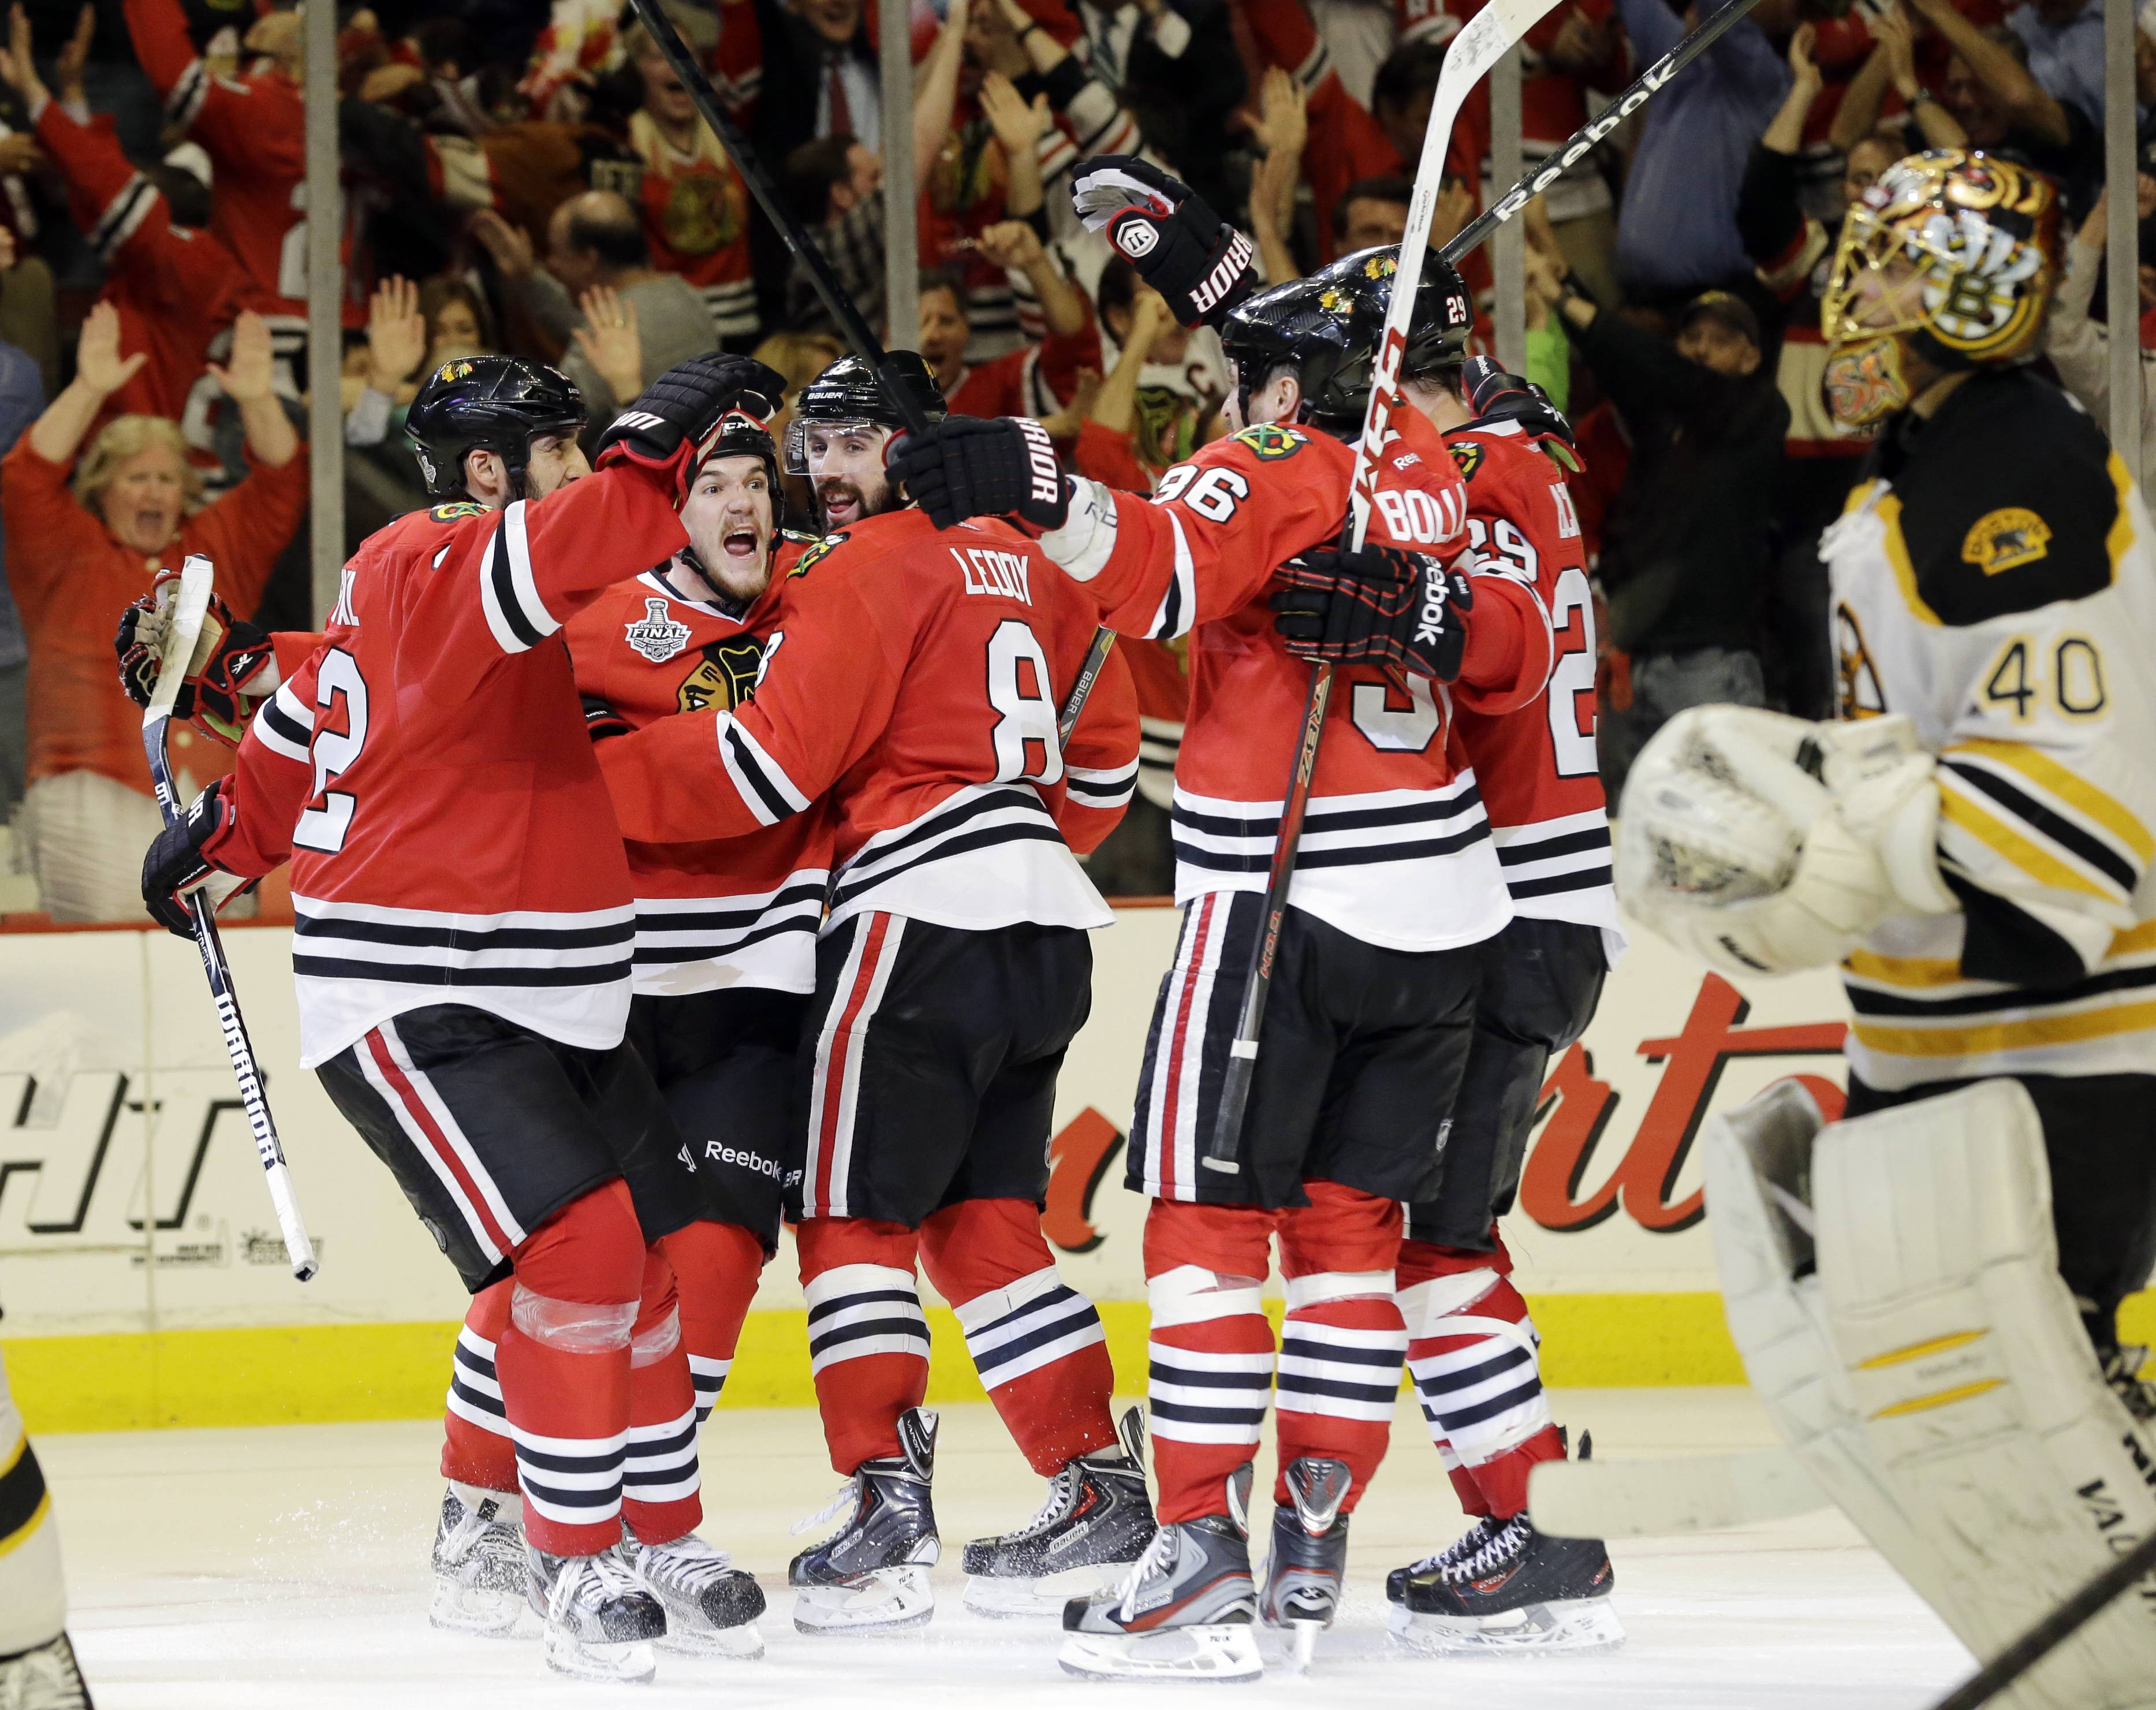 Blackhawks center Andrew Shaw, second from left, celebrates with his teammates after scoring the winning goal during the third overtime period of Game 1 in their NHL Stanley Cup Final hockey series against the Boston Bruins, Thursday, June 13, 2013, in Chicago.